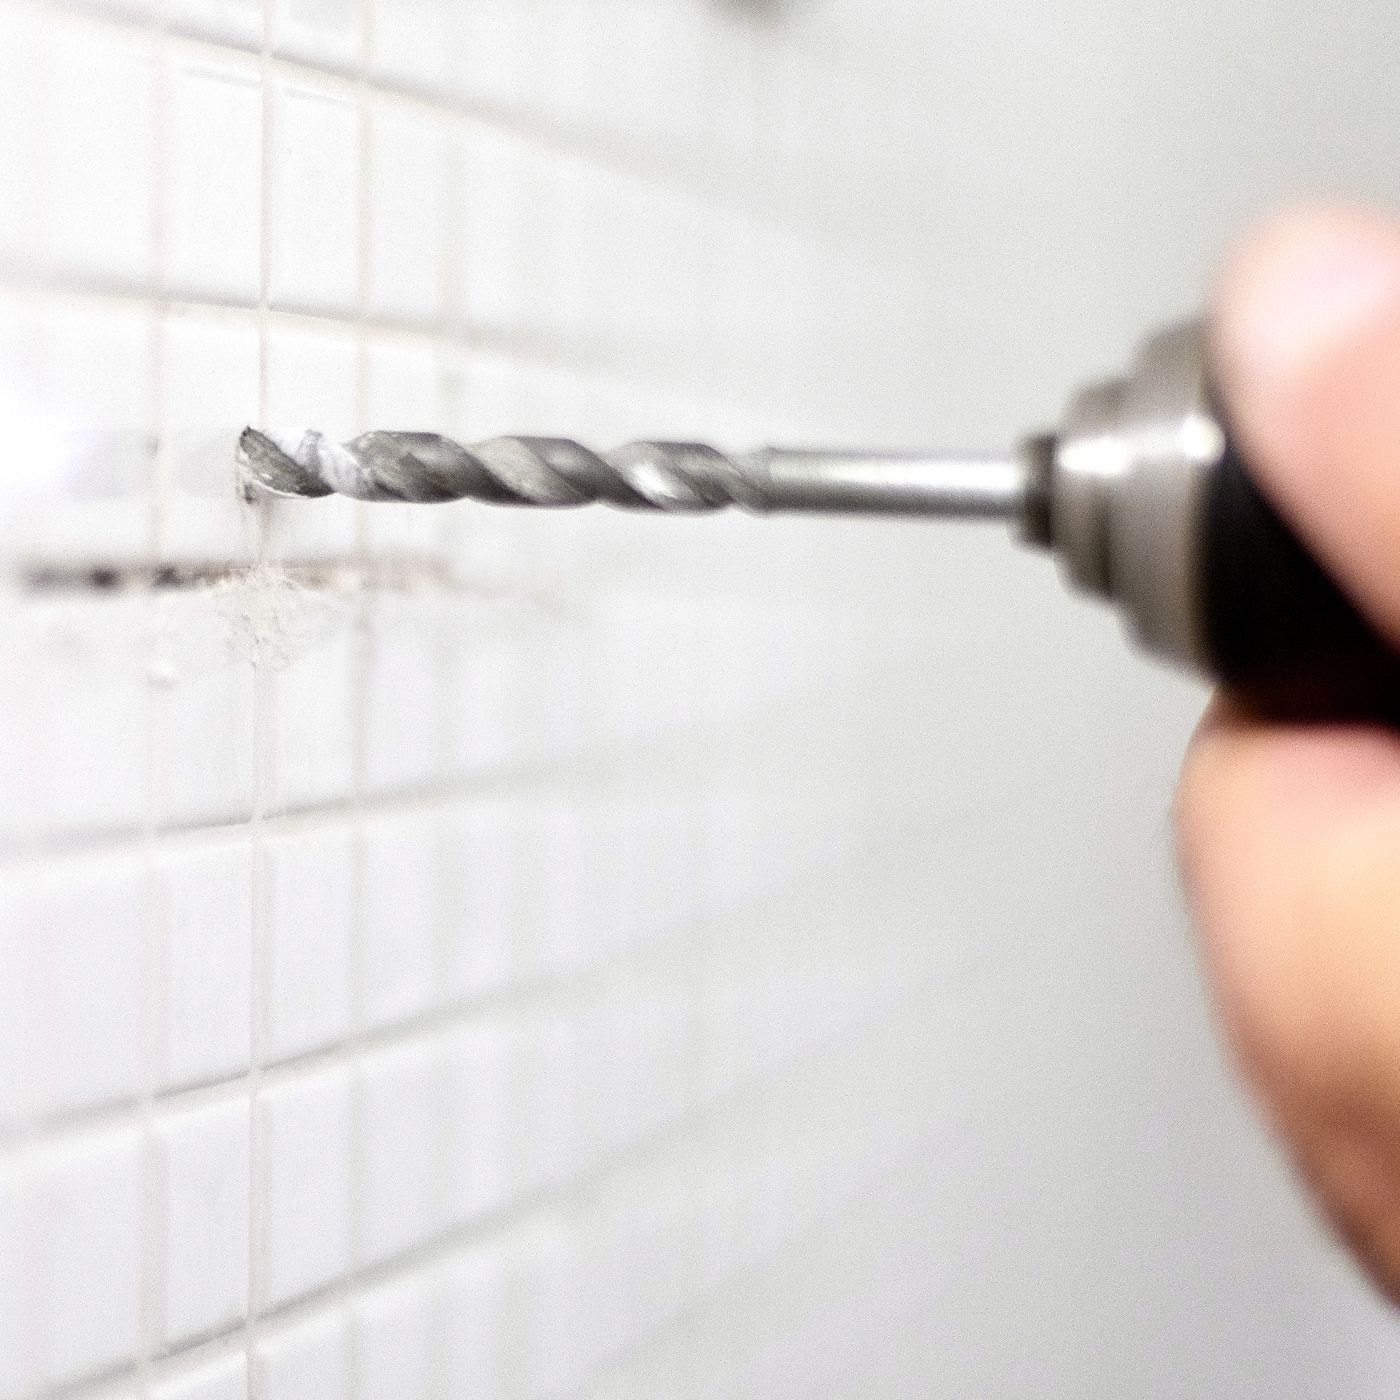 how to drill through tile with ease